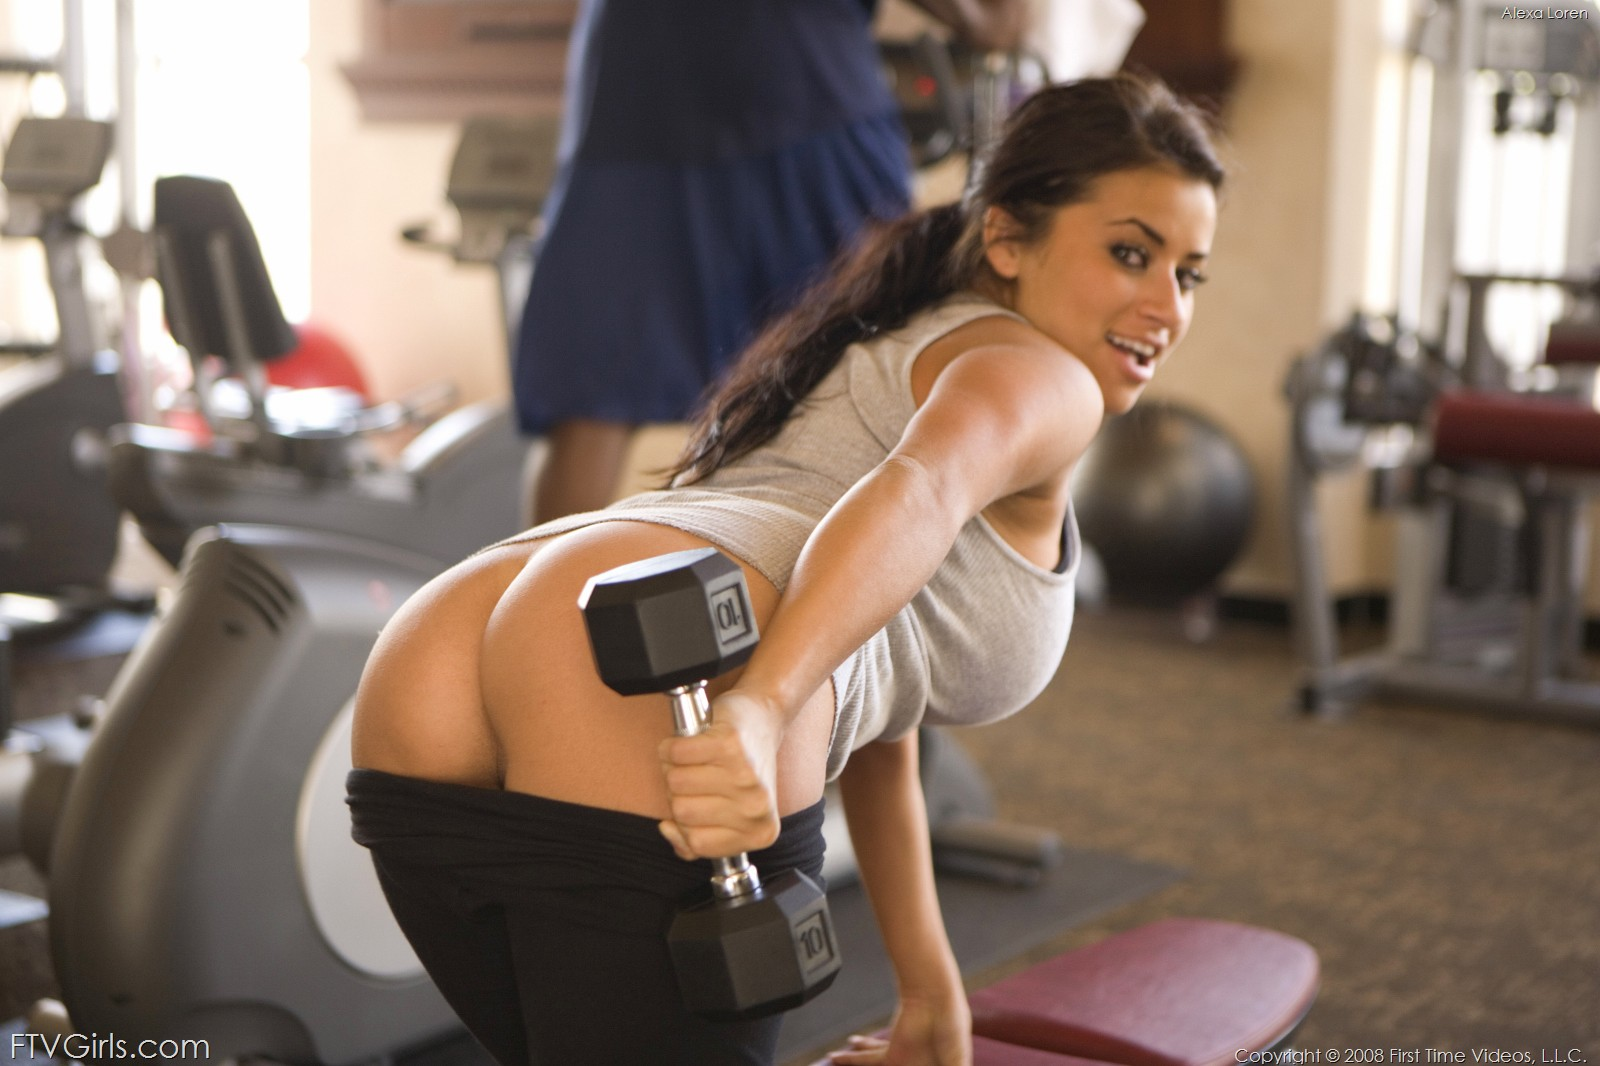 Boobs come out at the gym